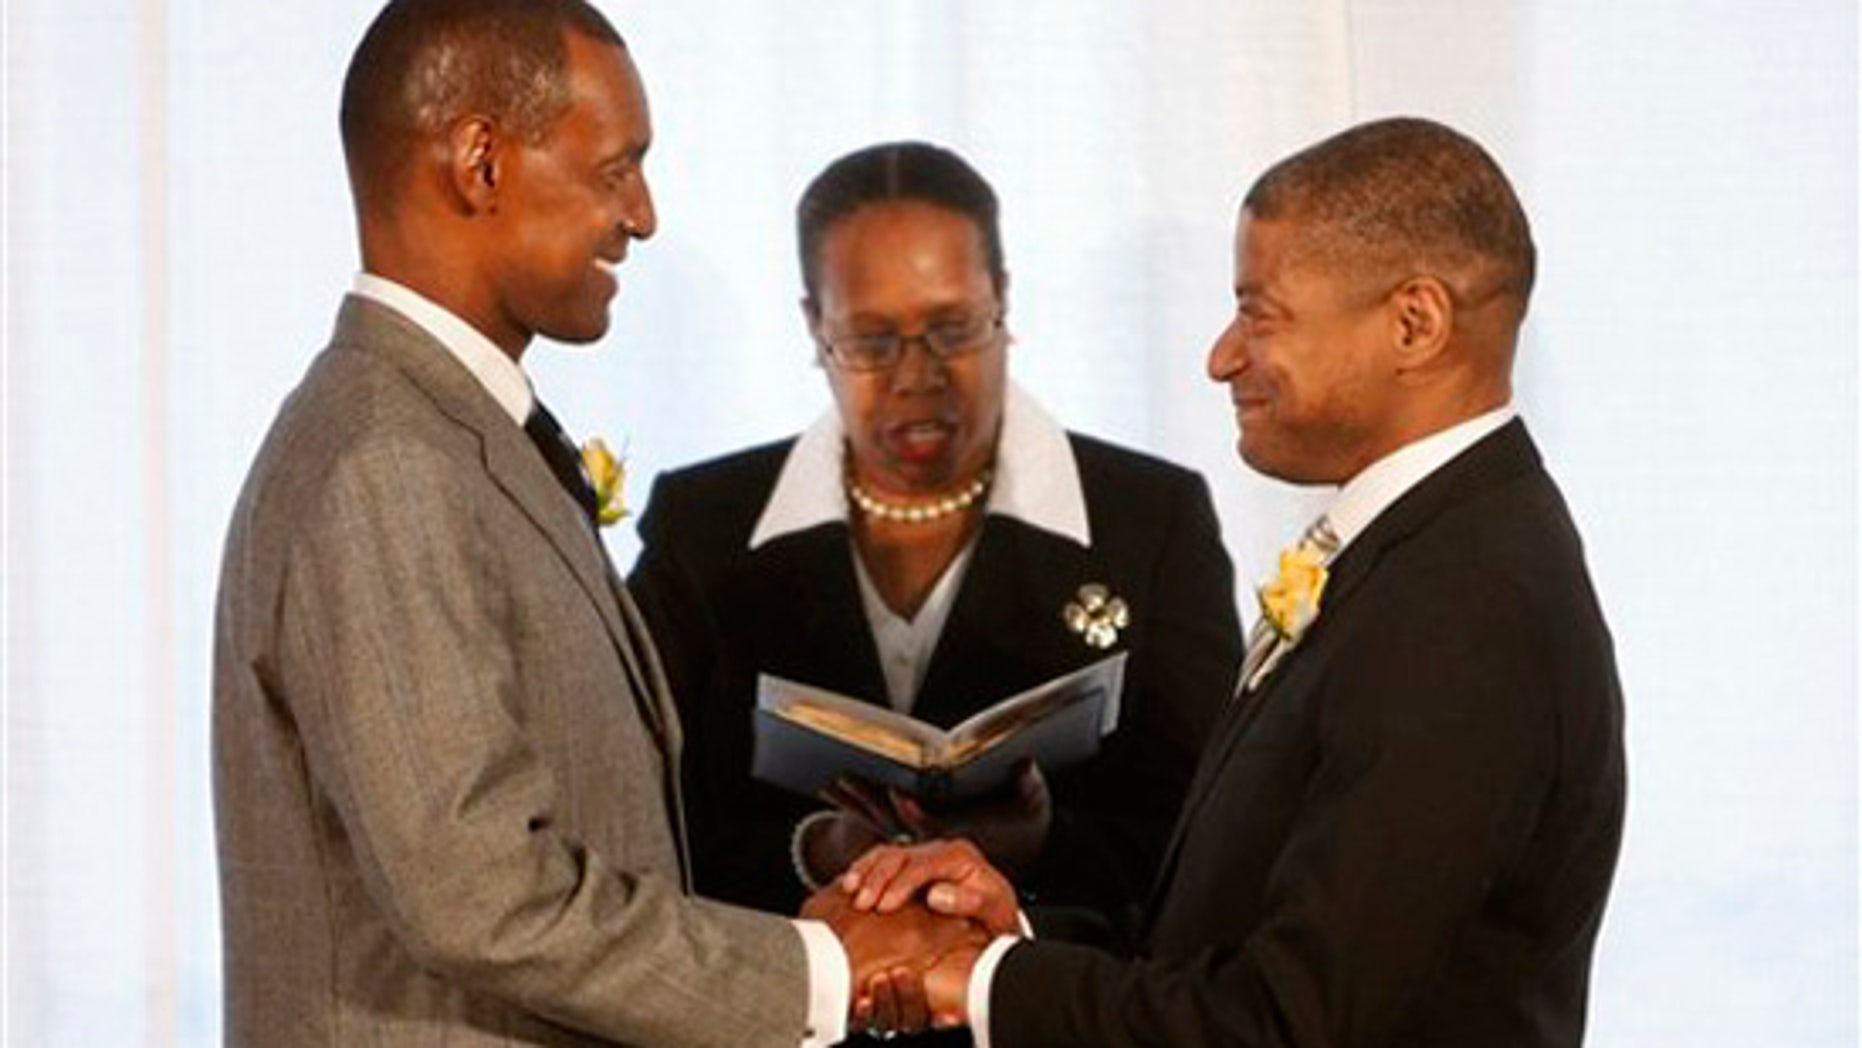 """Rocky Galloway, left, and Reginald Stanley are pronounced """"partners for life"""" by Rev. Sylvia E. Sumter during their marriage ceremony Tuesday, March 9, 2010, the first day that gay marriage is legal in Washington. (AP)"""